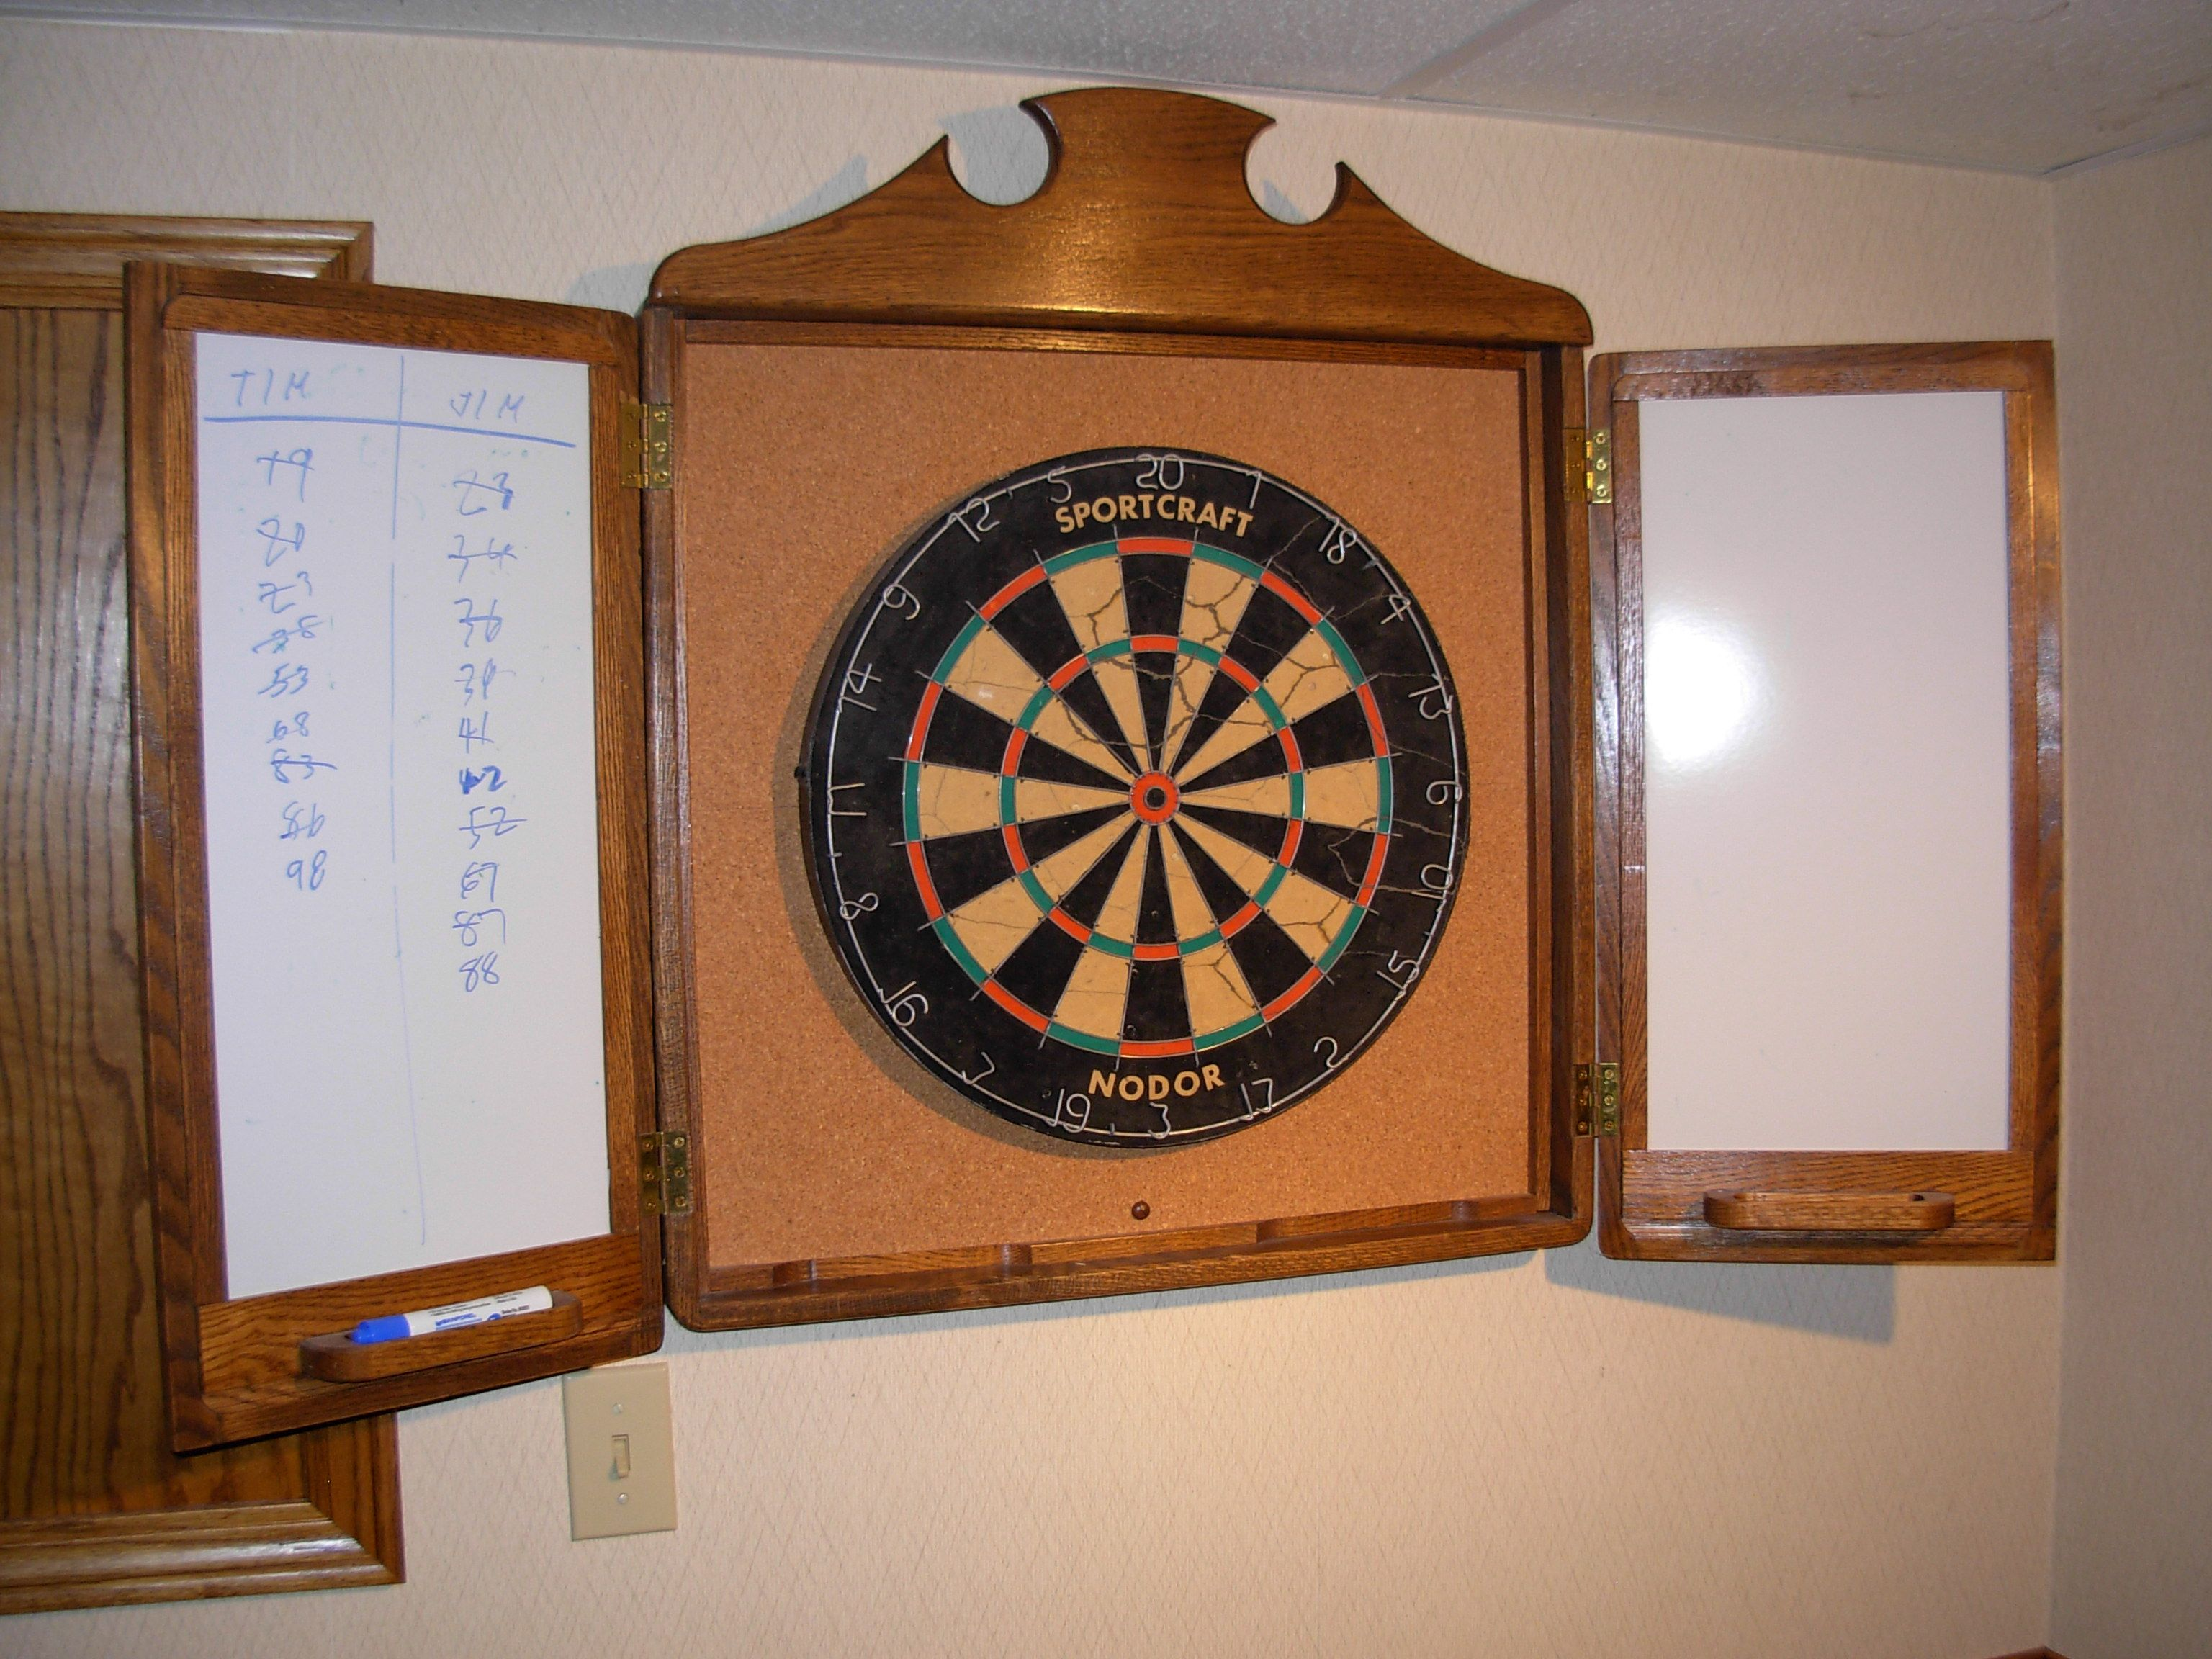 Merveilleux Dart Board Cabinet With Cork Back And Dry Erase Boards On Each Side |  Practical Wood Products | Pinterest | Dart Board Cabinet, Erase Board And  Cork